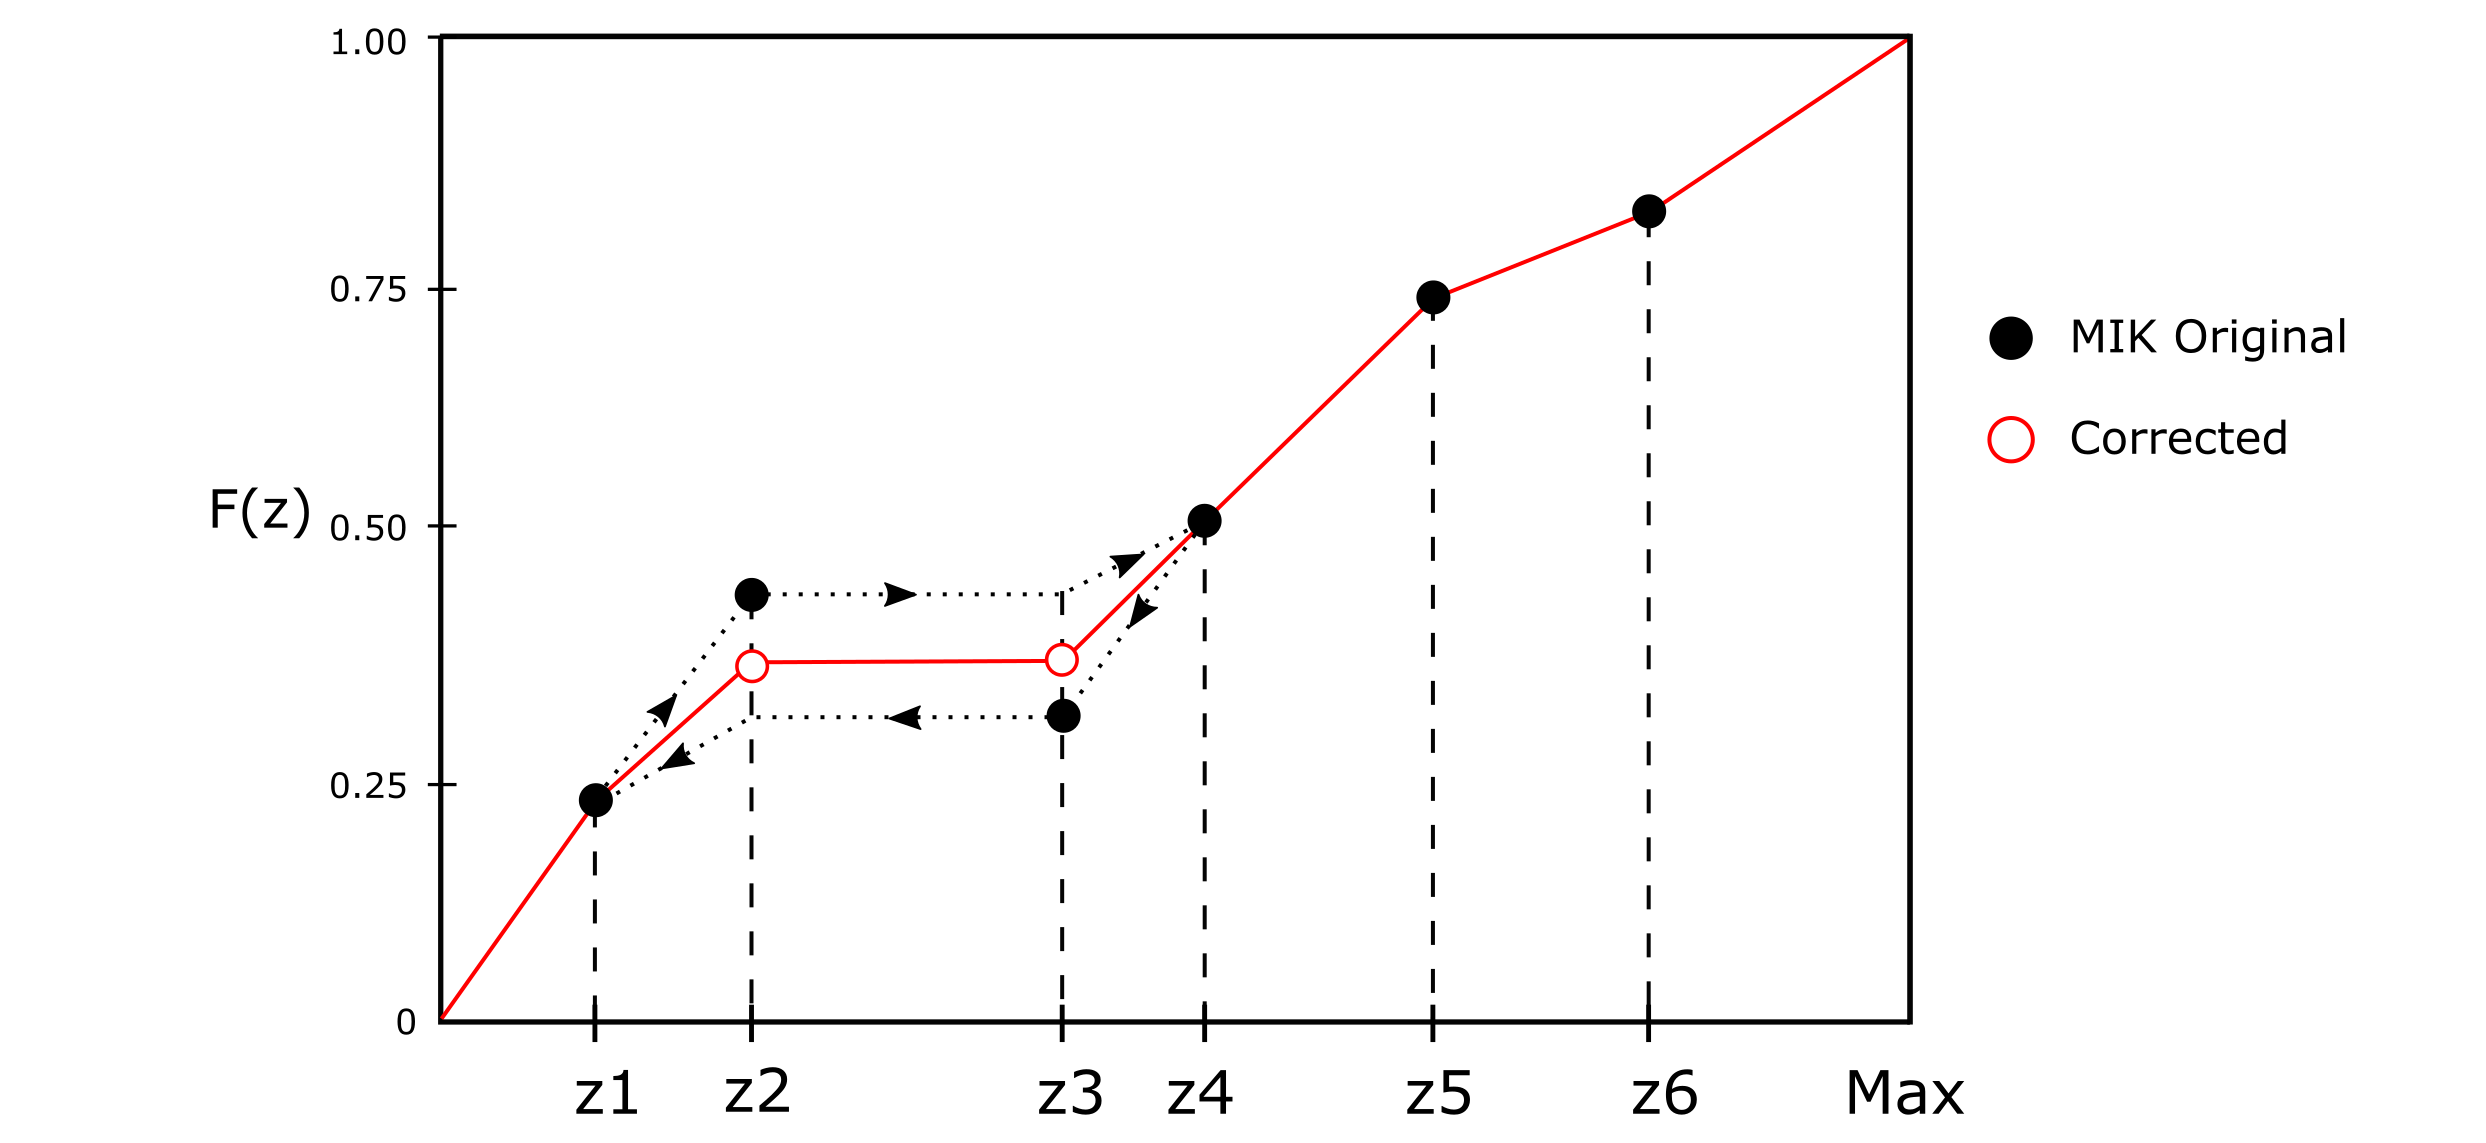 Order relation deviation and the applied correction. The points are the MIK estimates and the corrected CDF is obtained by averaging upward and downward corrections (Deutsch & Journel, 1998).